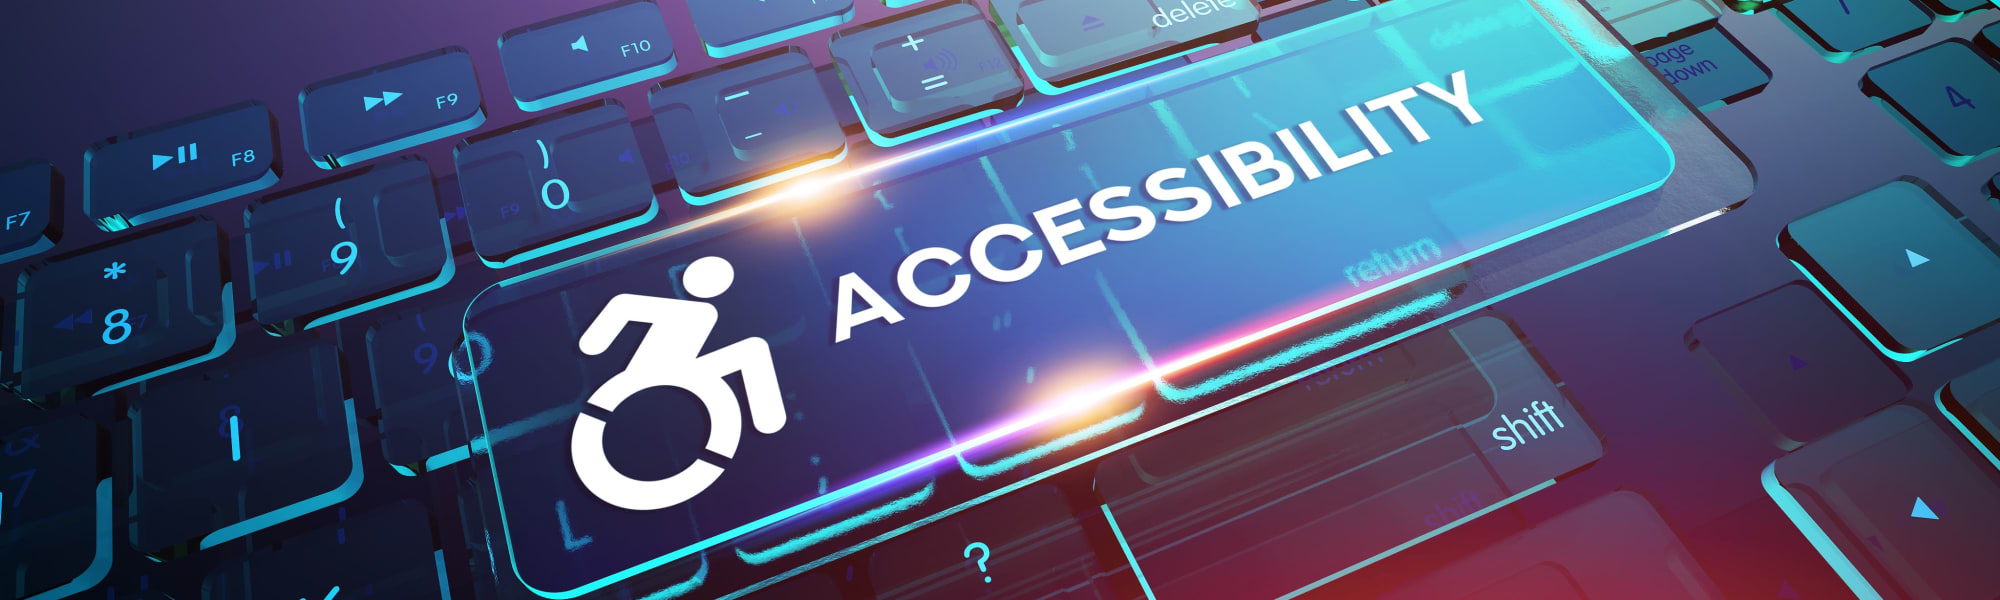 Accessibility policy for Redstone at SanTan Village in Gilbert, Arizona